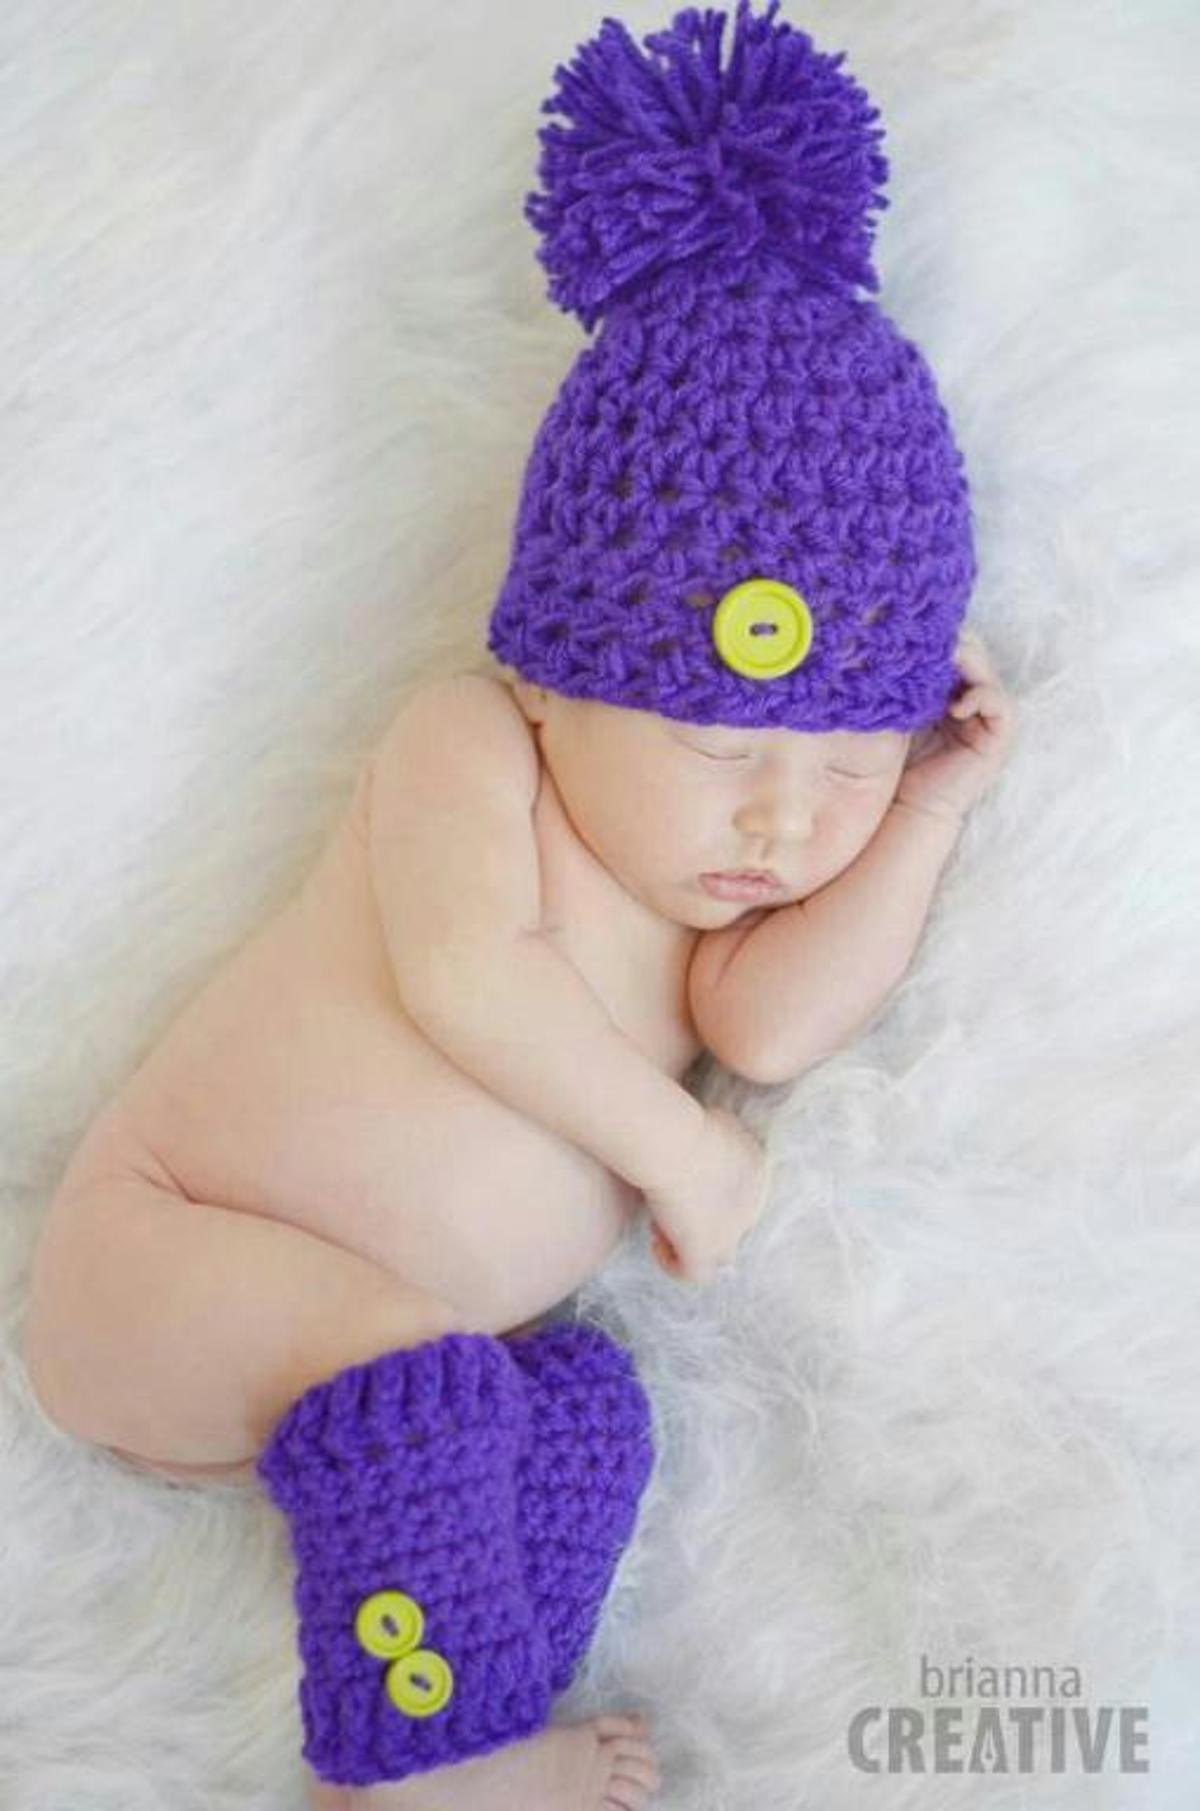 Free Crochet Baby Hats Lovely 12 Newborn Crochet Hat Patterns to Download for Free Of Attractive 48 Photos Free Crochet Baby Hats